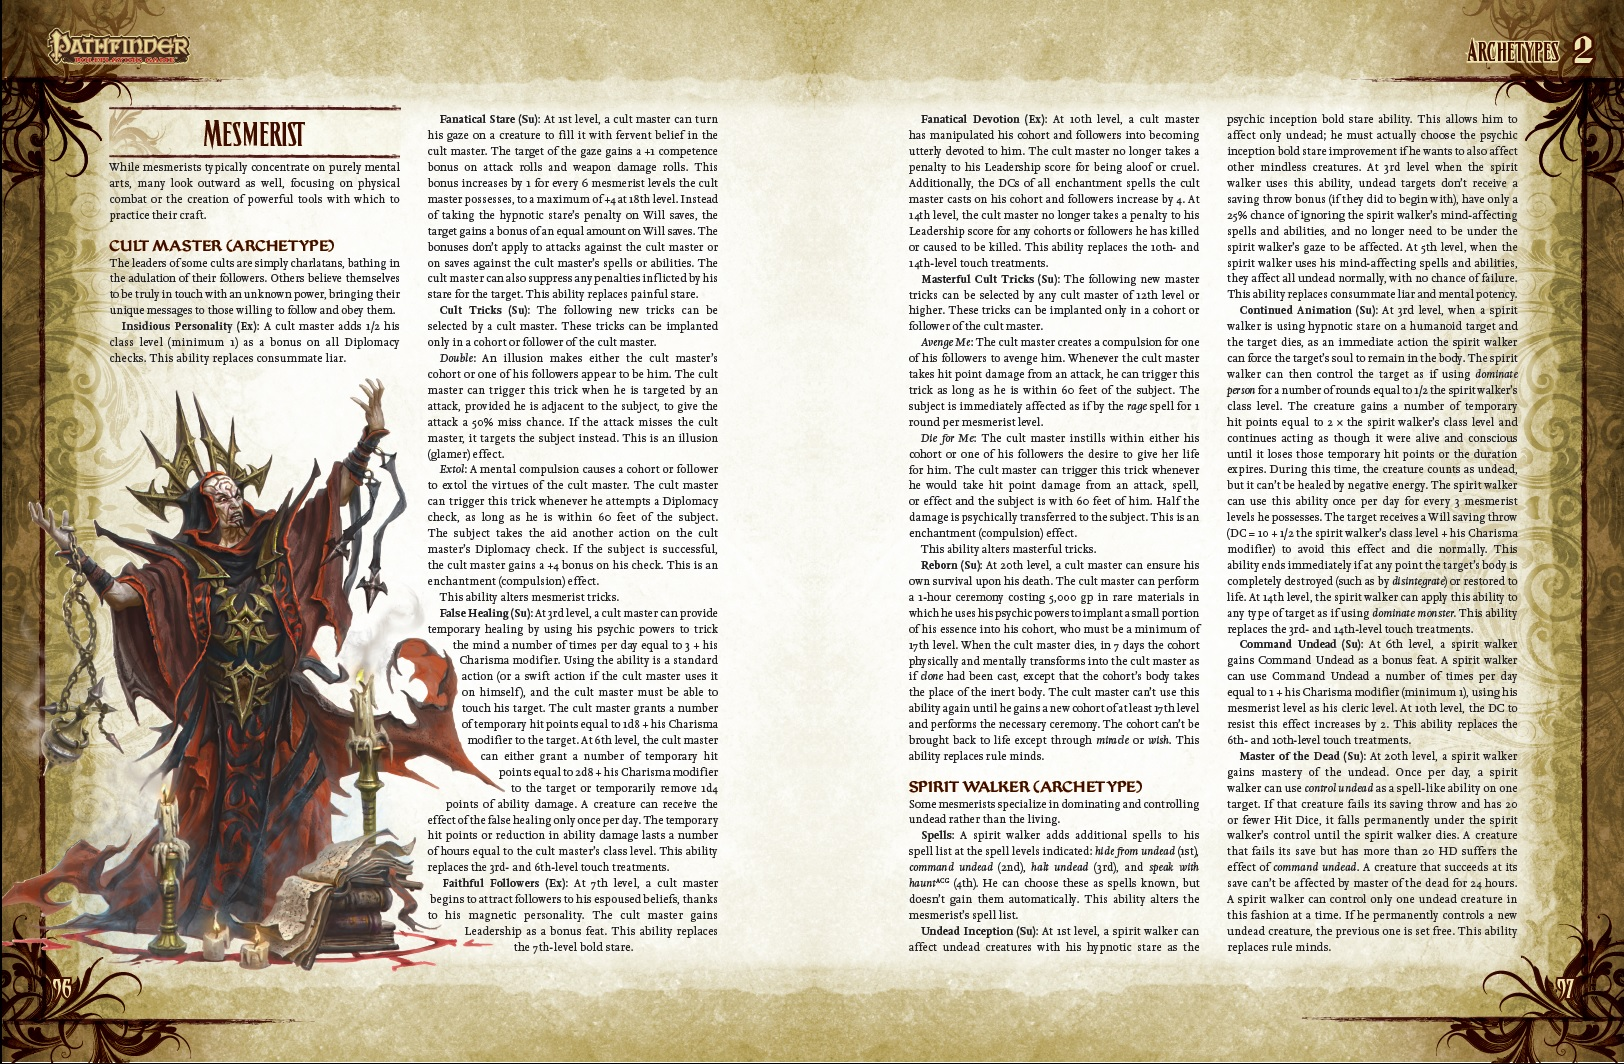 Exclusive OCCULT ADVENTURES Preview for PATHFINDER!